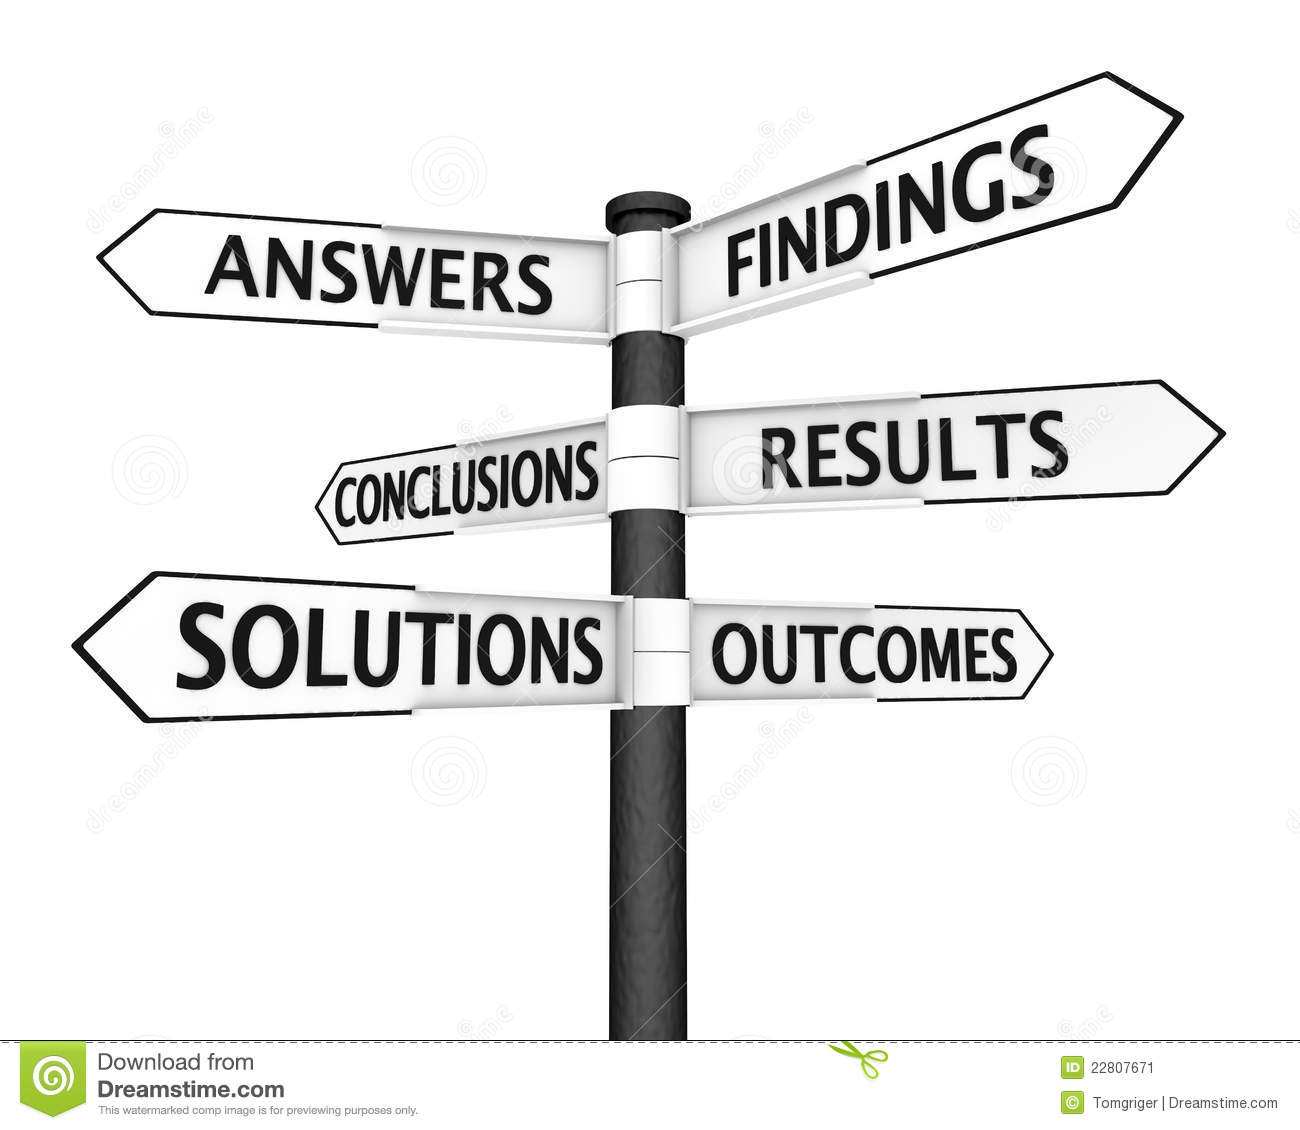 Solutions Signpost Stock Image  Image 22807671. Medicaid Dhh Louisiana Gov Post Job Listings. Where Is Tulane University Nursing Care Home. Nurse Anesthetist Schools In Wisconsin. Free Smtp Service No Authentication. Meaningful Use Explained Car Insurance For 50. Hotels In Minneapolis With Water Slides. Davis Vision Provider Login London To Syria. Great America Leasing Corporation